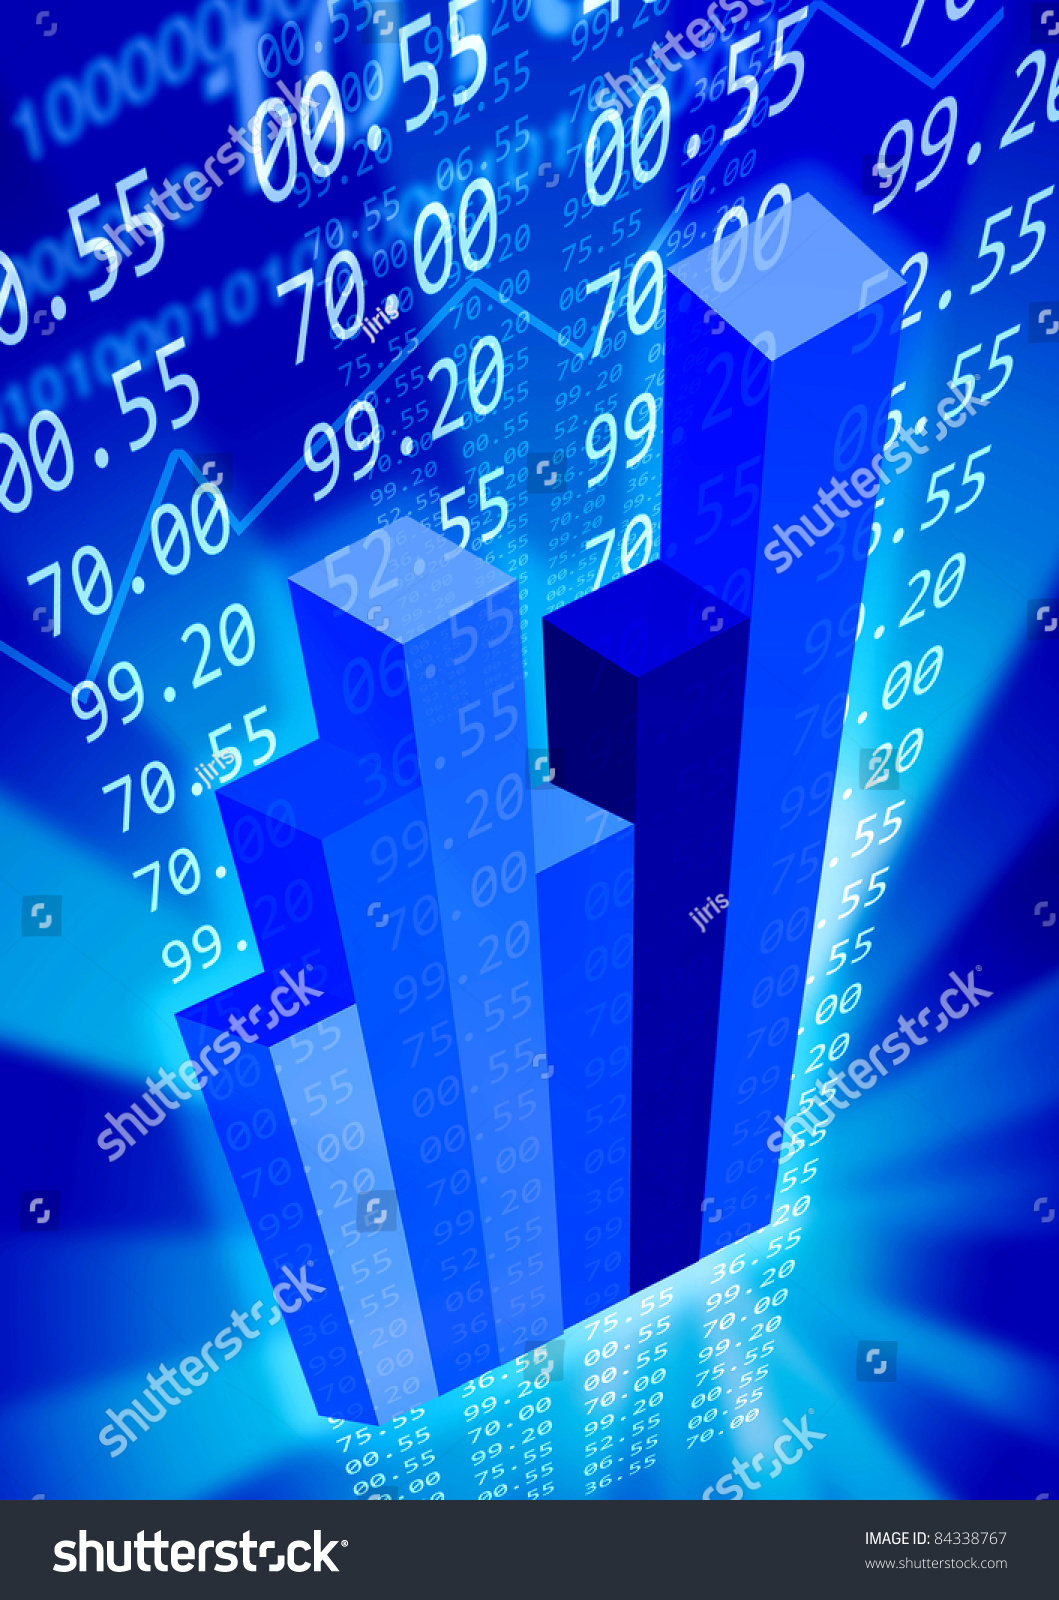 Blue Economy Background With Graphs And Numbers. Stock Photo 84338767 ...